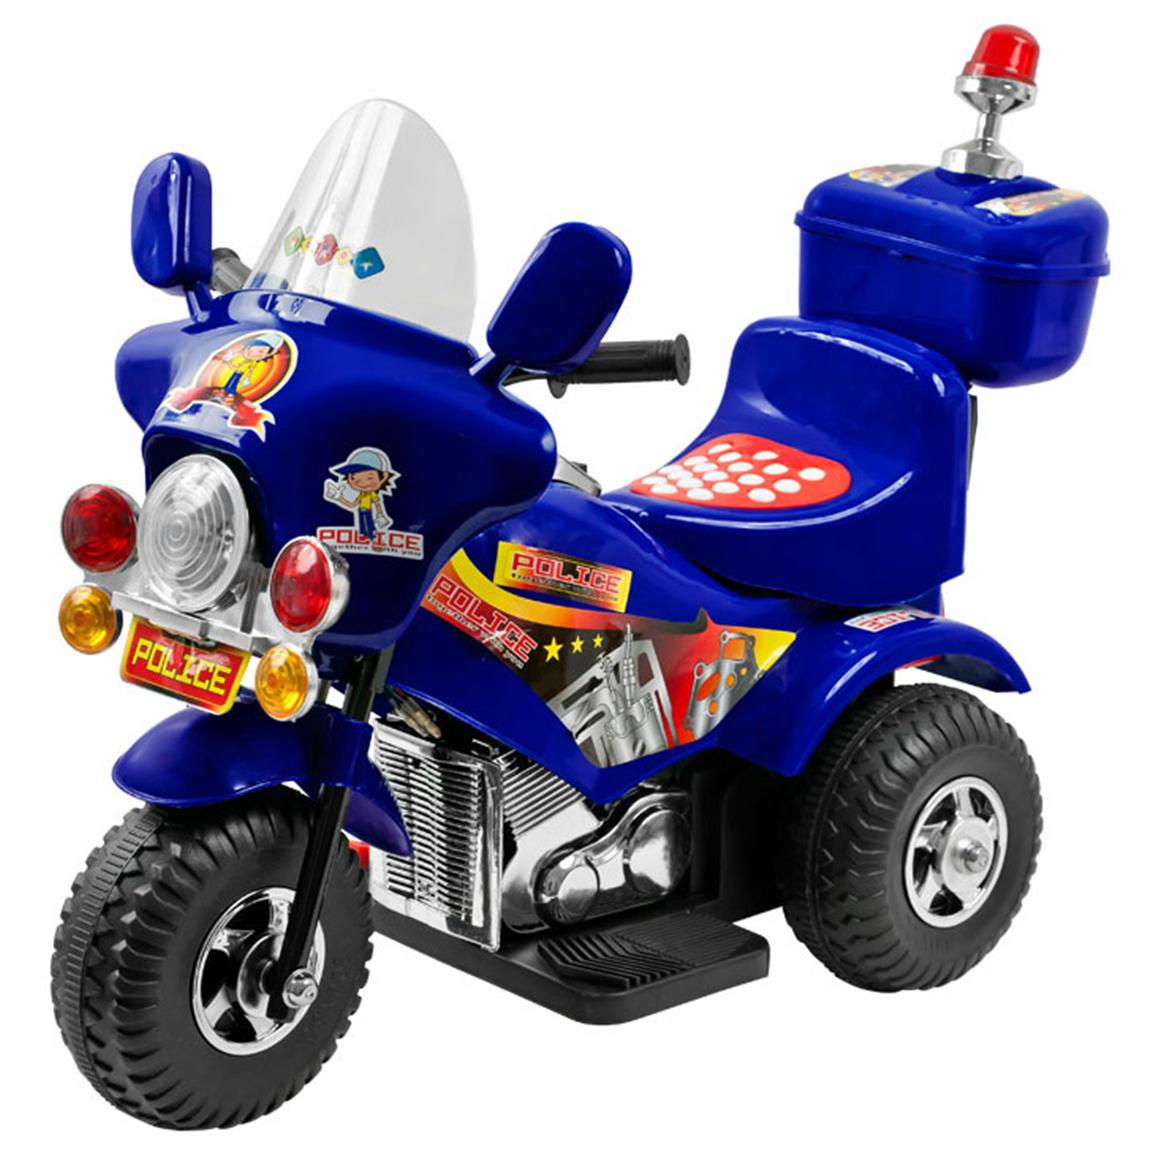 Lil' Rider™ Blue Justice Battery-operated Kids' Police Trike